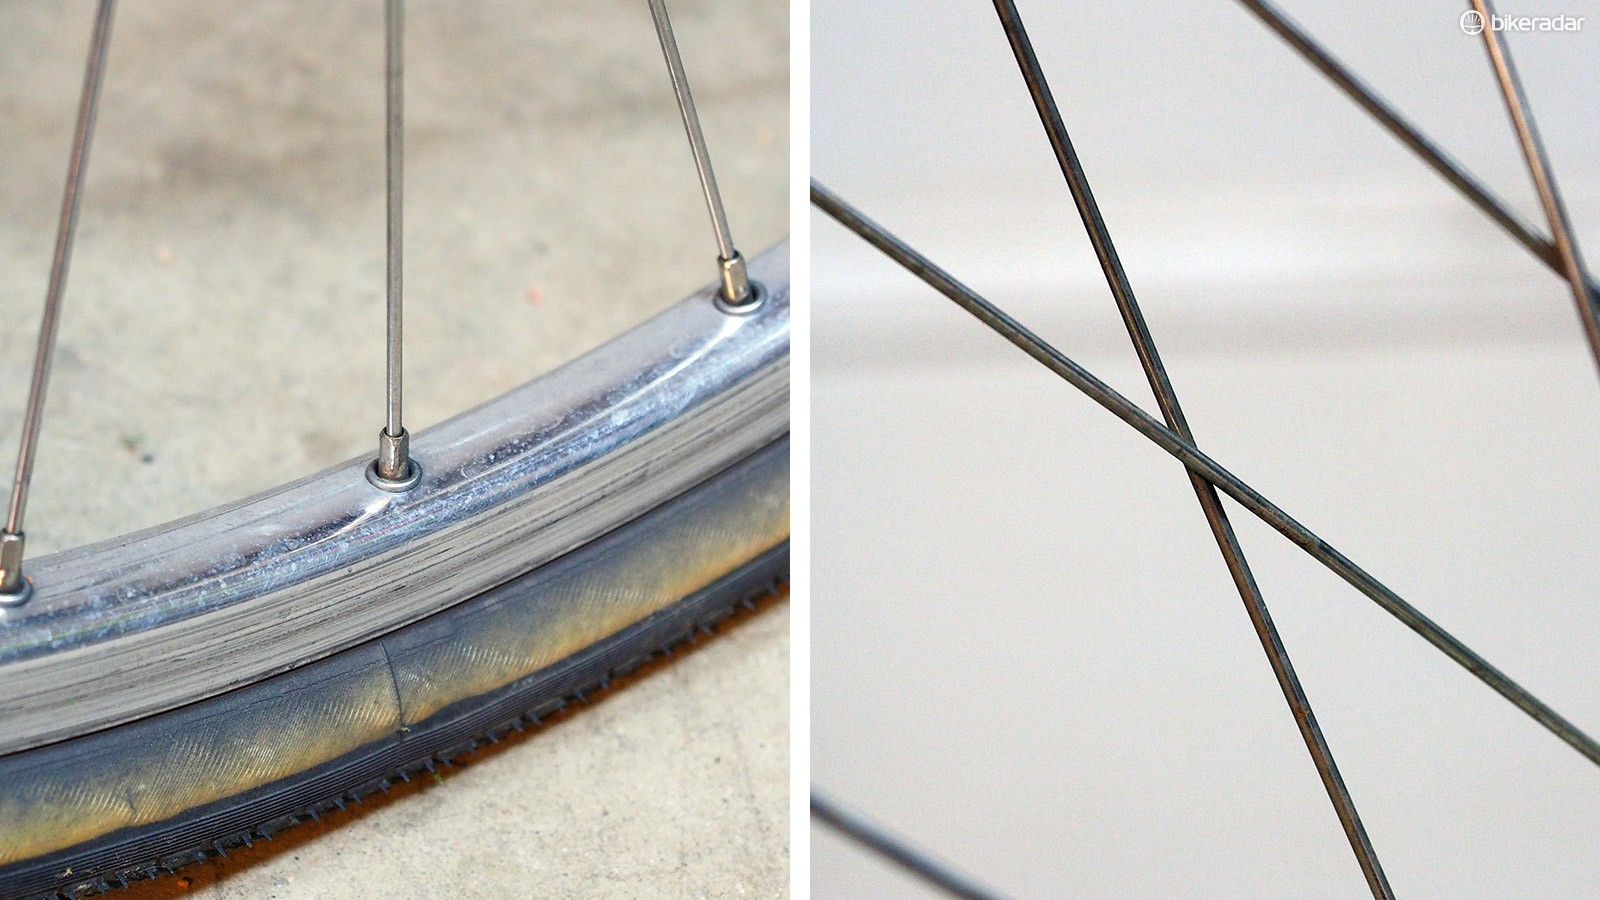 Creaky wheels are often indicative of low spoke tension. Retensioning the wheel is the best solution but a drop of oil at each spoke crossing, rim eyelet, and spoke nipple can help, too